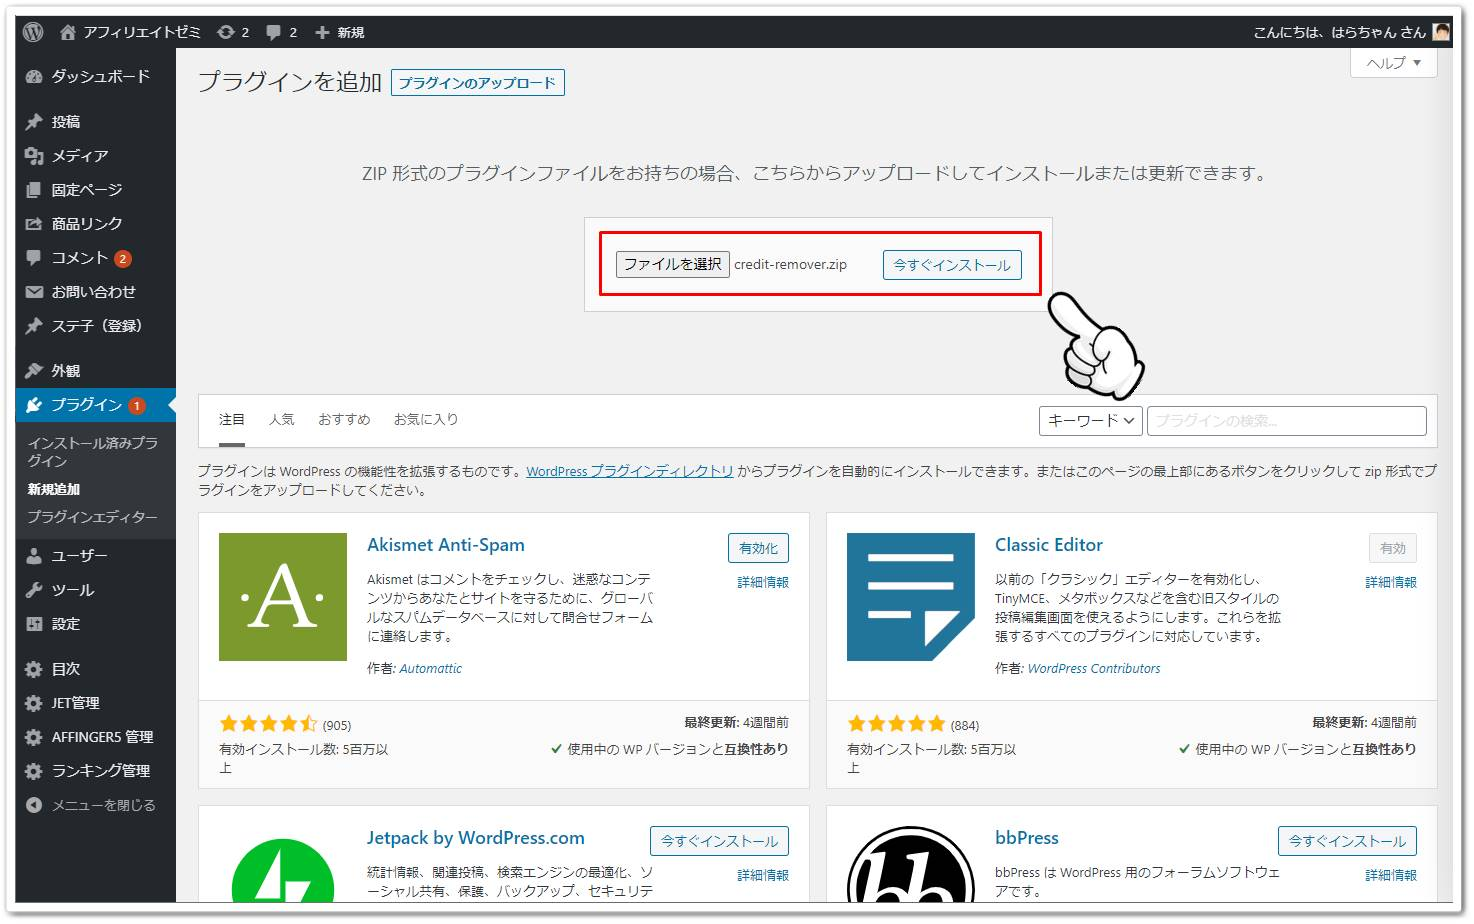 「credit-remover.zip」のインストール